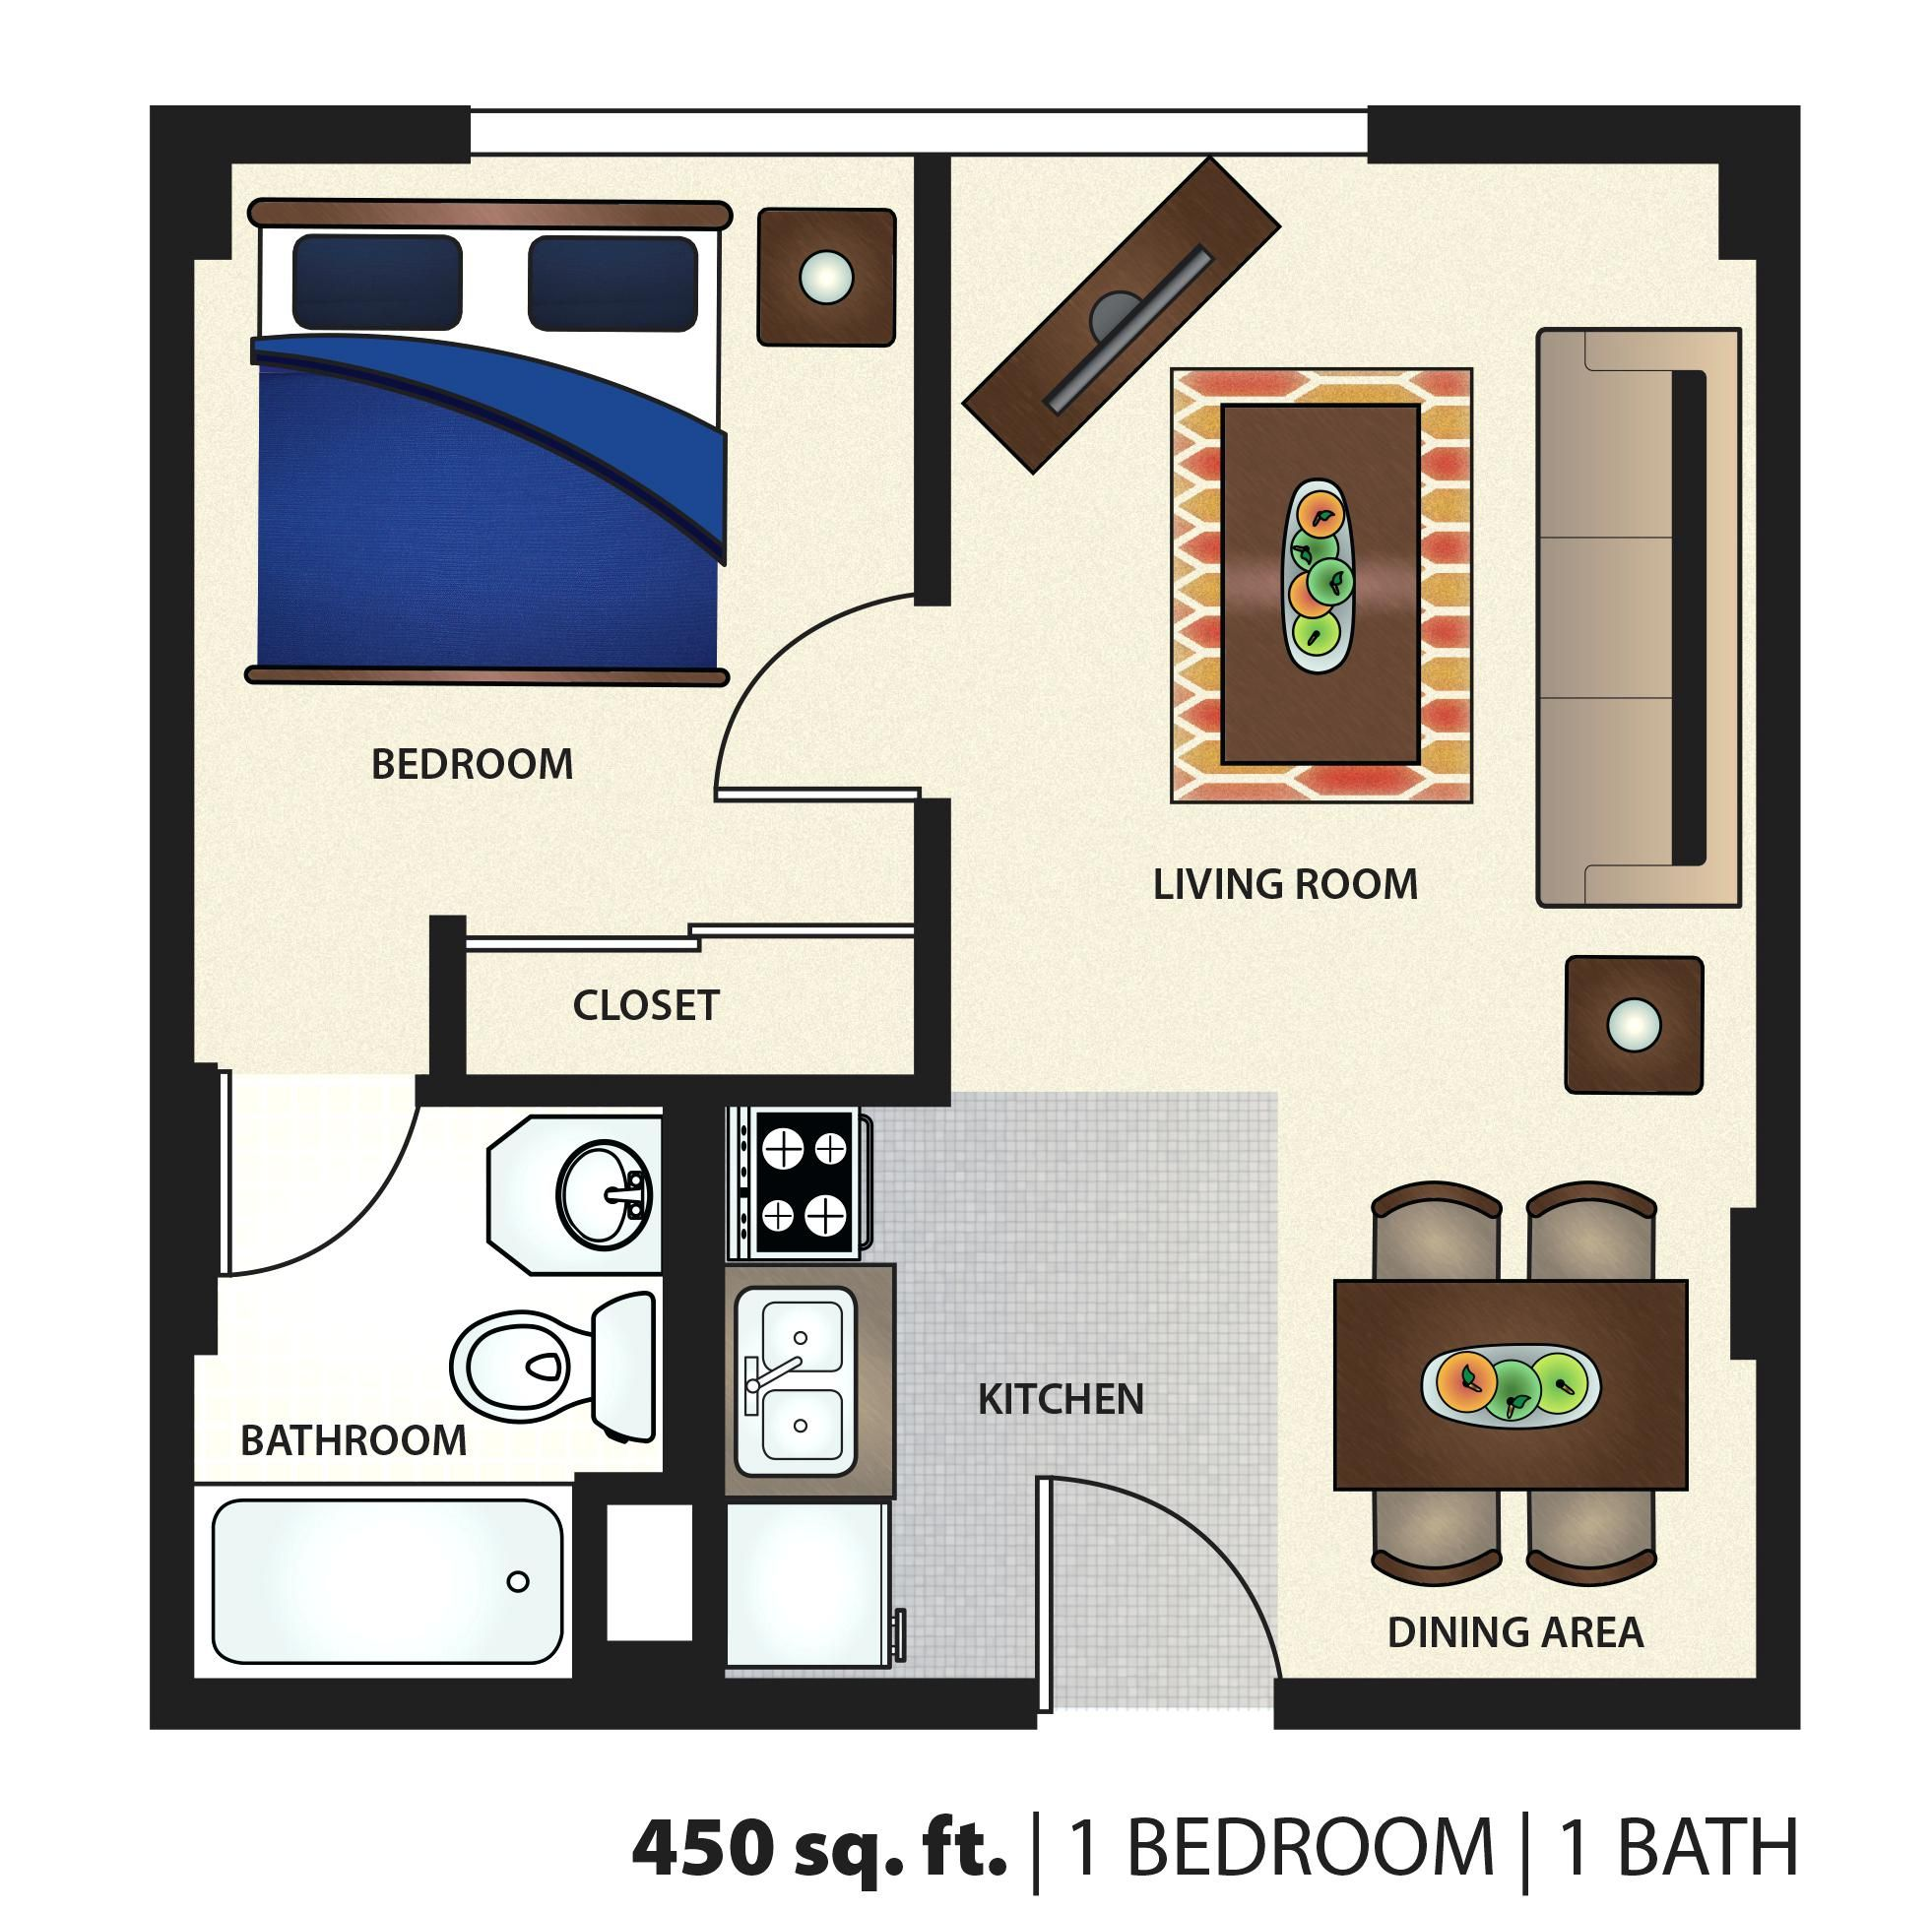 Image Result For 450 Sq Ft Apartment Layout Apartment Floor Plan